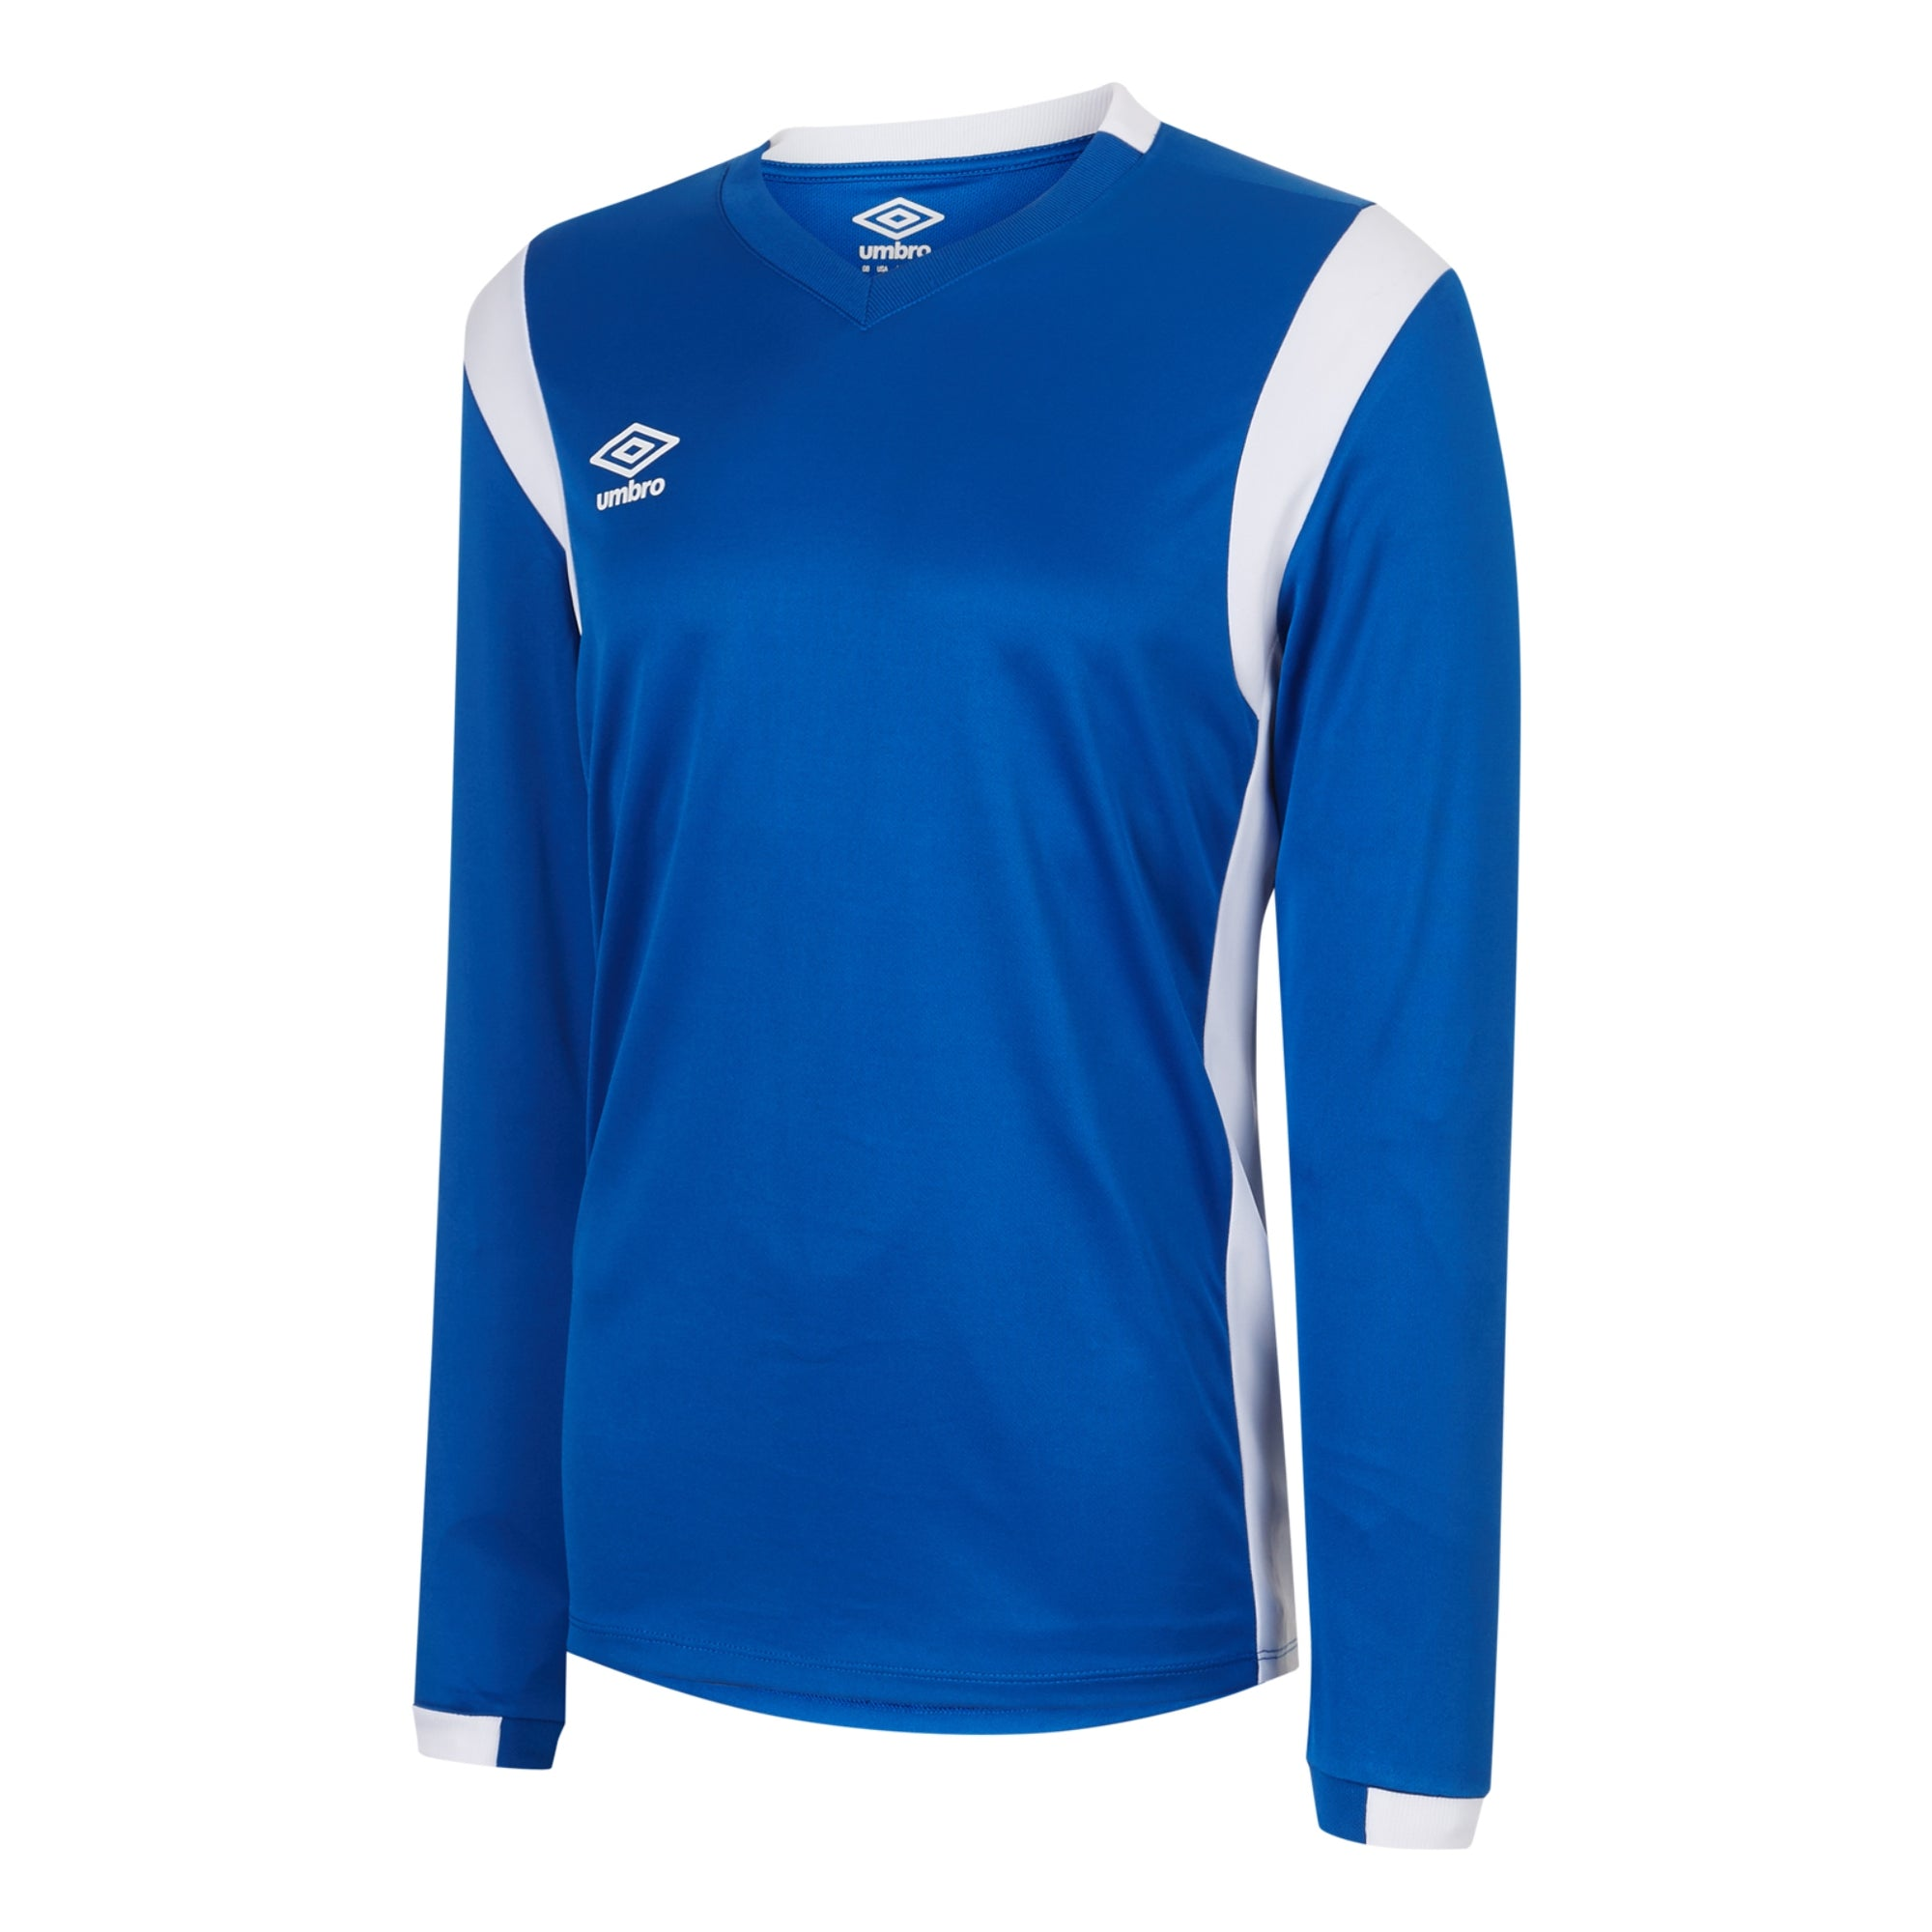 Umbro Spartan Jersey LS - Royal/White